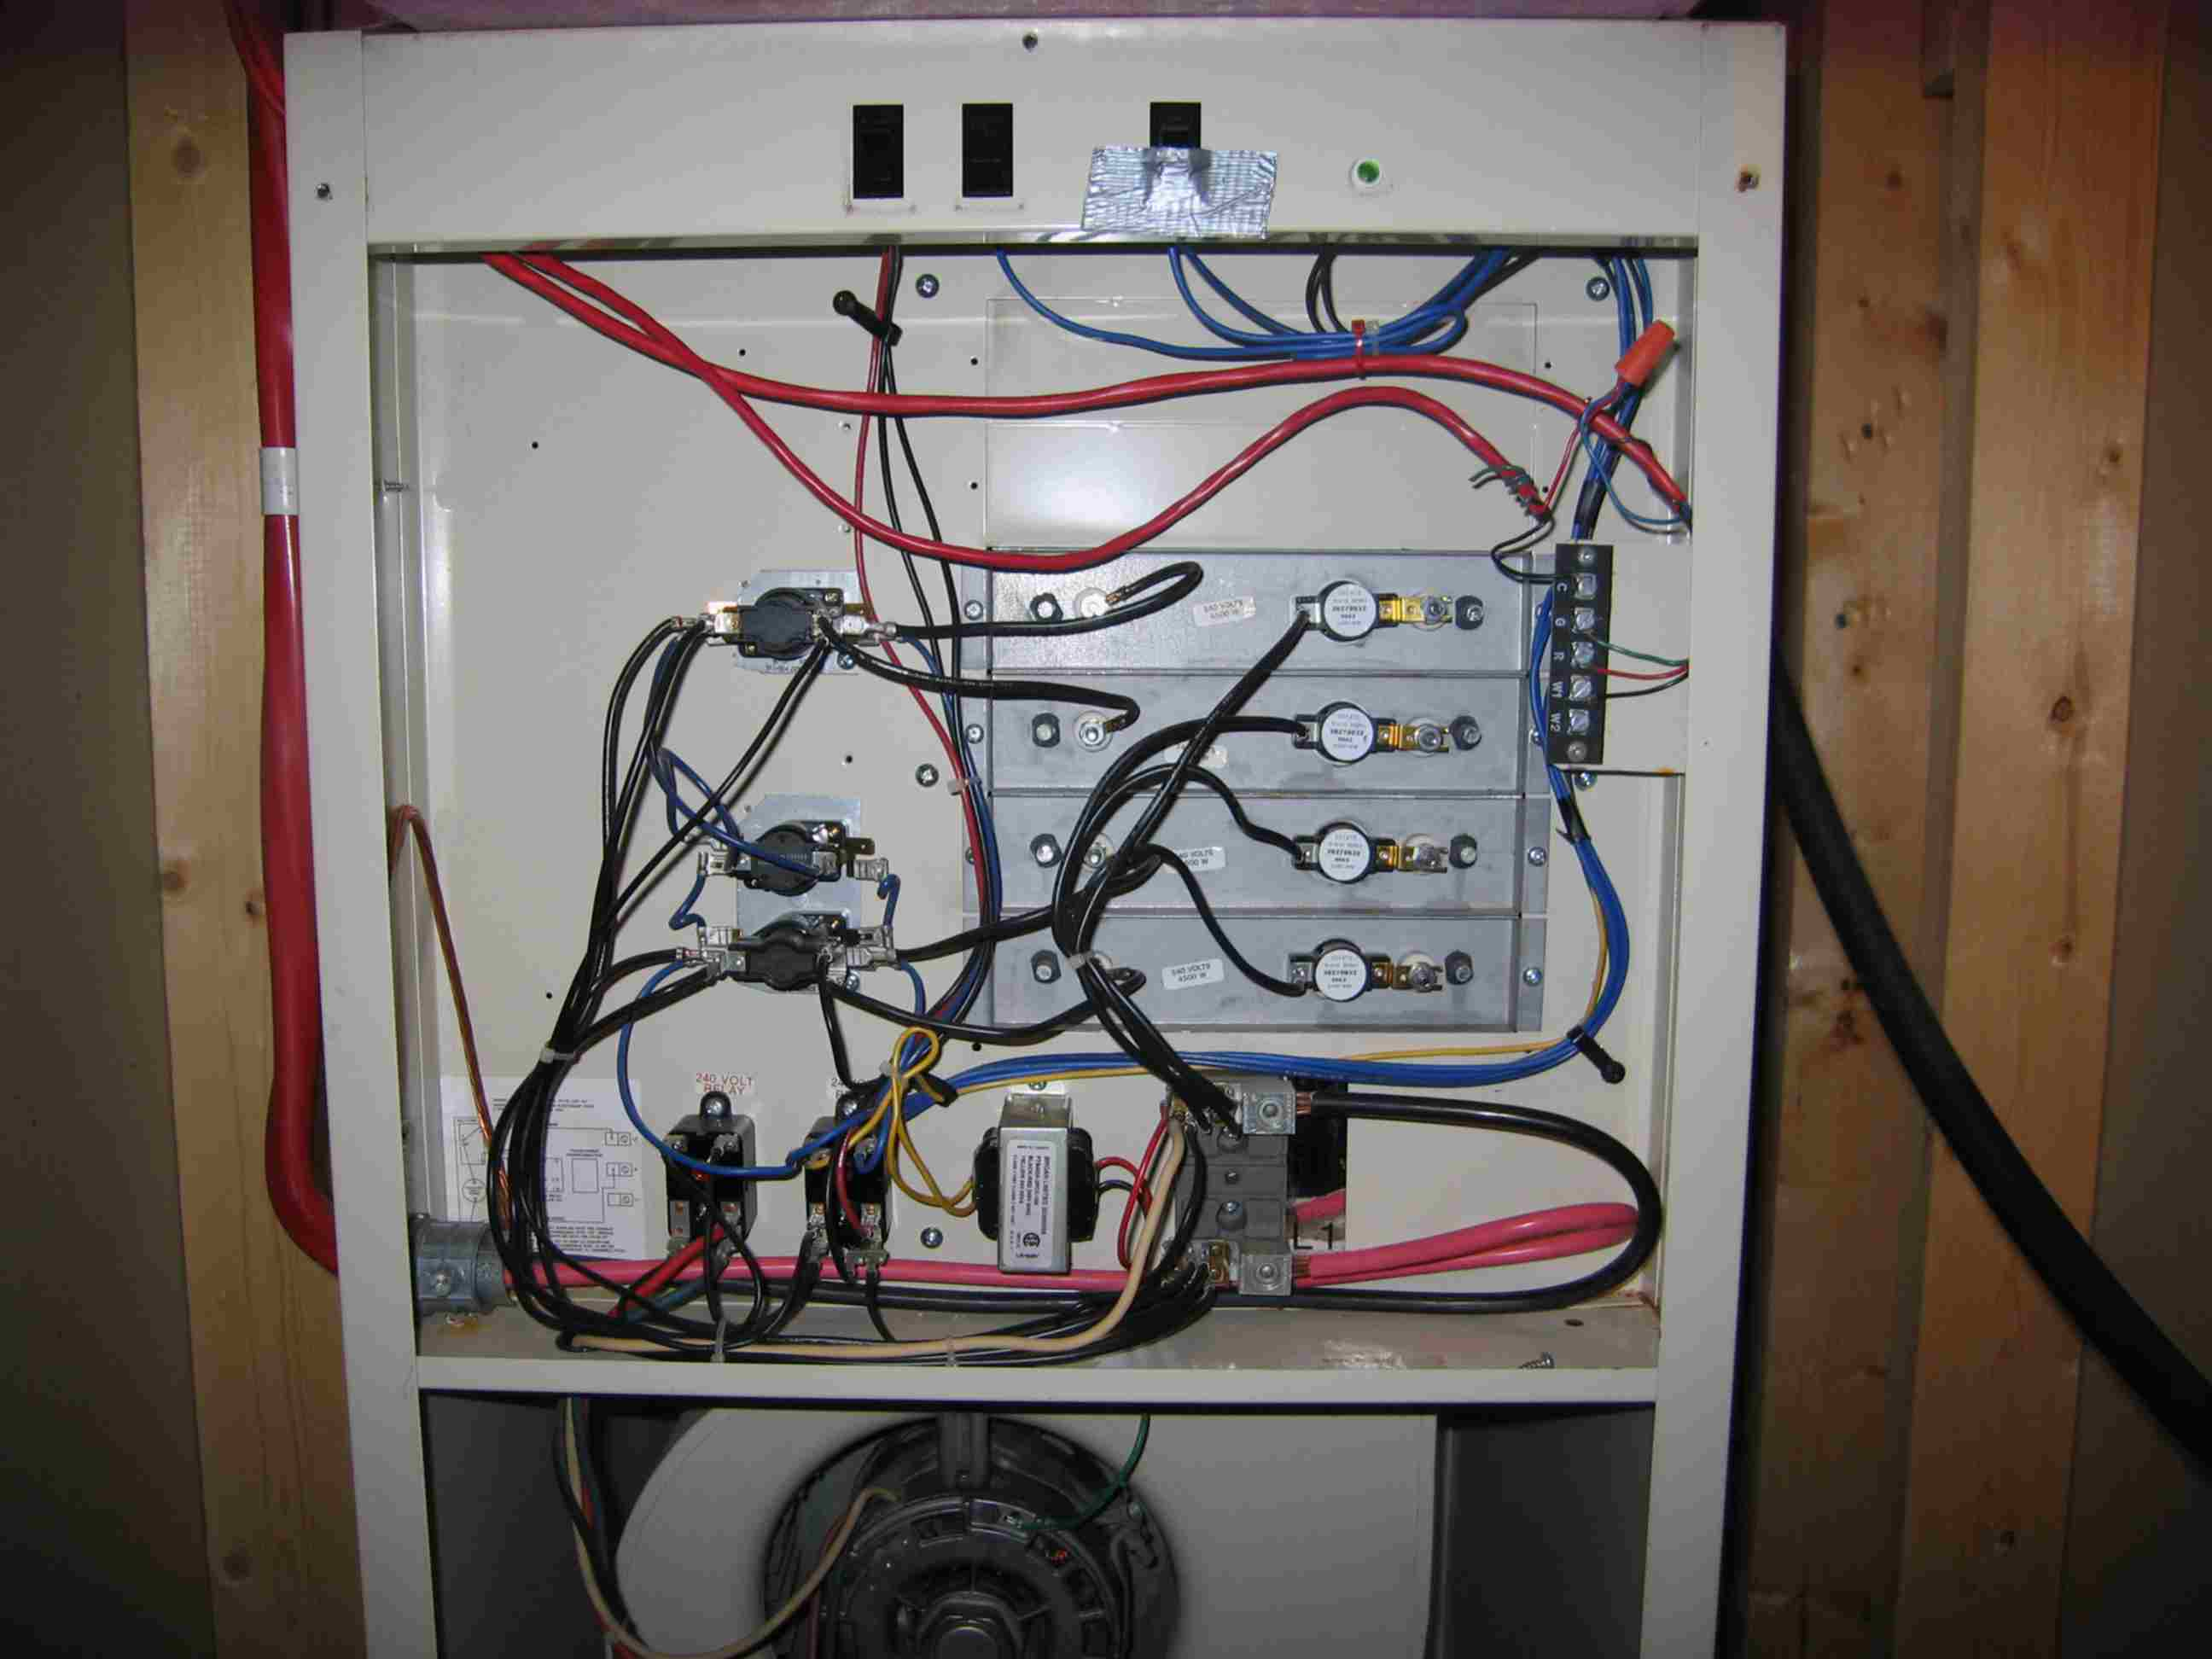 Viewtopic as well Wirering 20diagram 20RTC 201000 together with Coleman Mobile Home Furnace Wiring Diagram in addition 6xbq3 Intertherm Nordyne E2eb 023ha Electric Furnace further Wiring Diagram For Home Furnace. on mobile home intertherm furnace wiring diagram